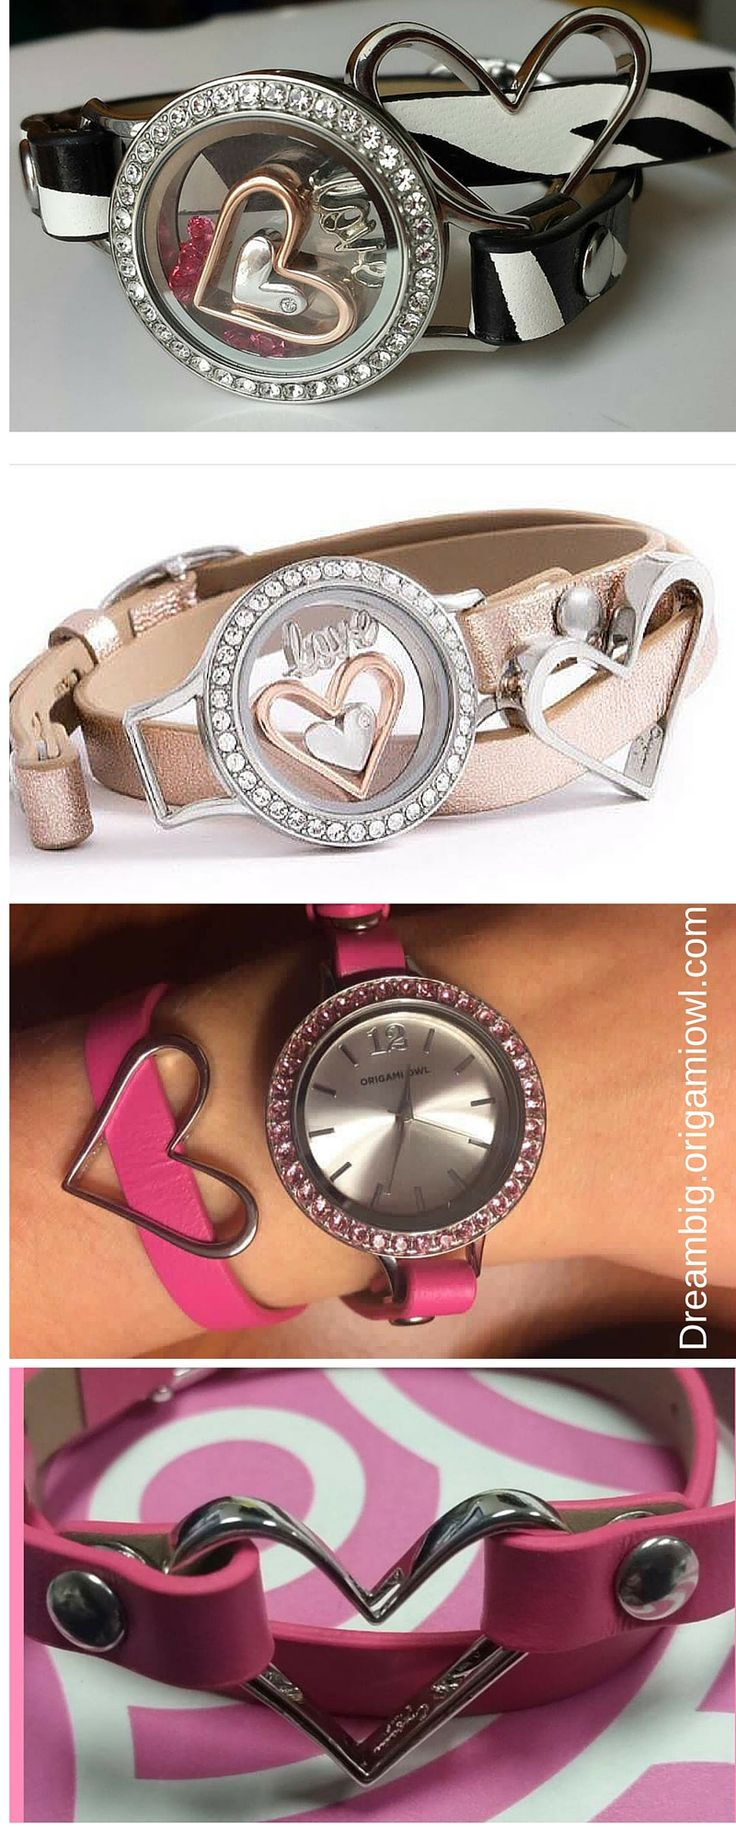 Origami Owl leather bracelet or watch ideas .. Mix and match. The watch has a large size locket face and the locket in a medium size.. Base + twist on & off faces..